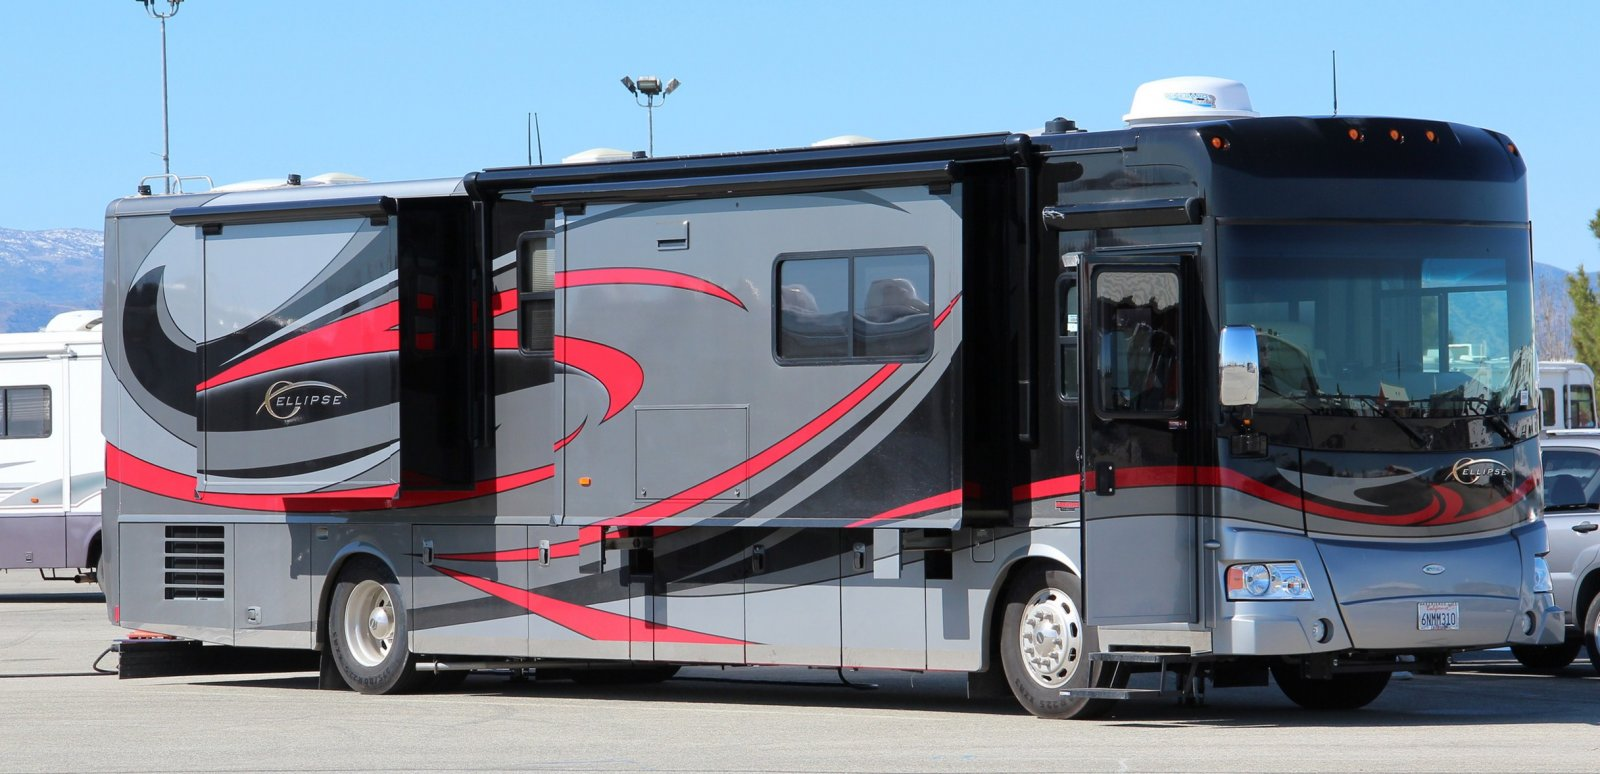 Click image for larger version  Name:My RV.jpg Views:152 Size:188.1 KB ID:20856